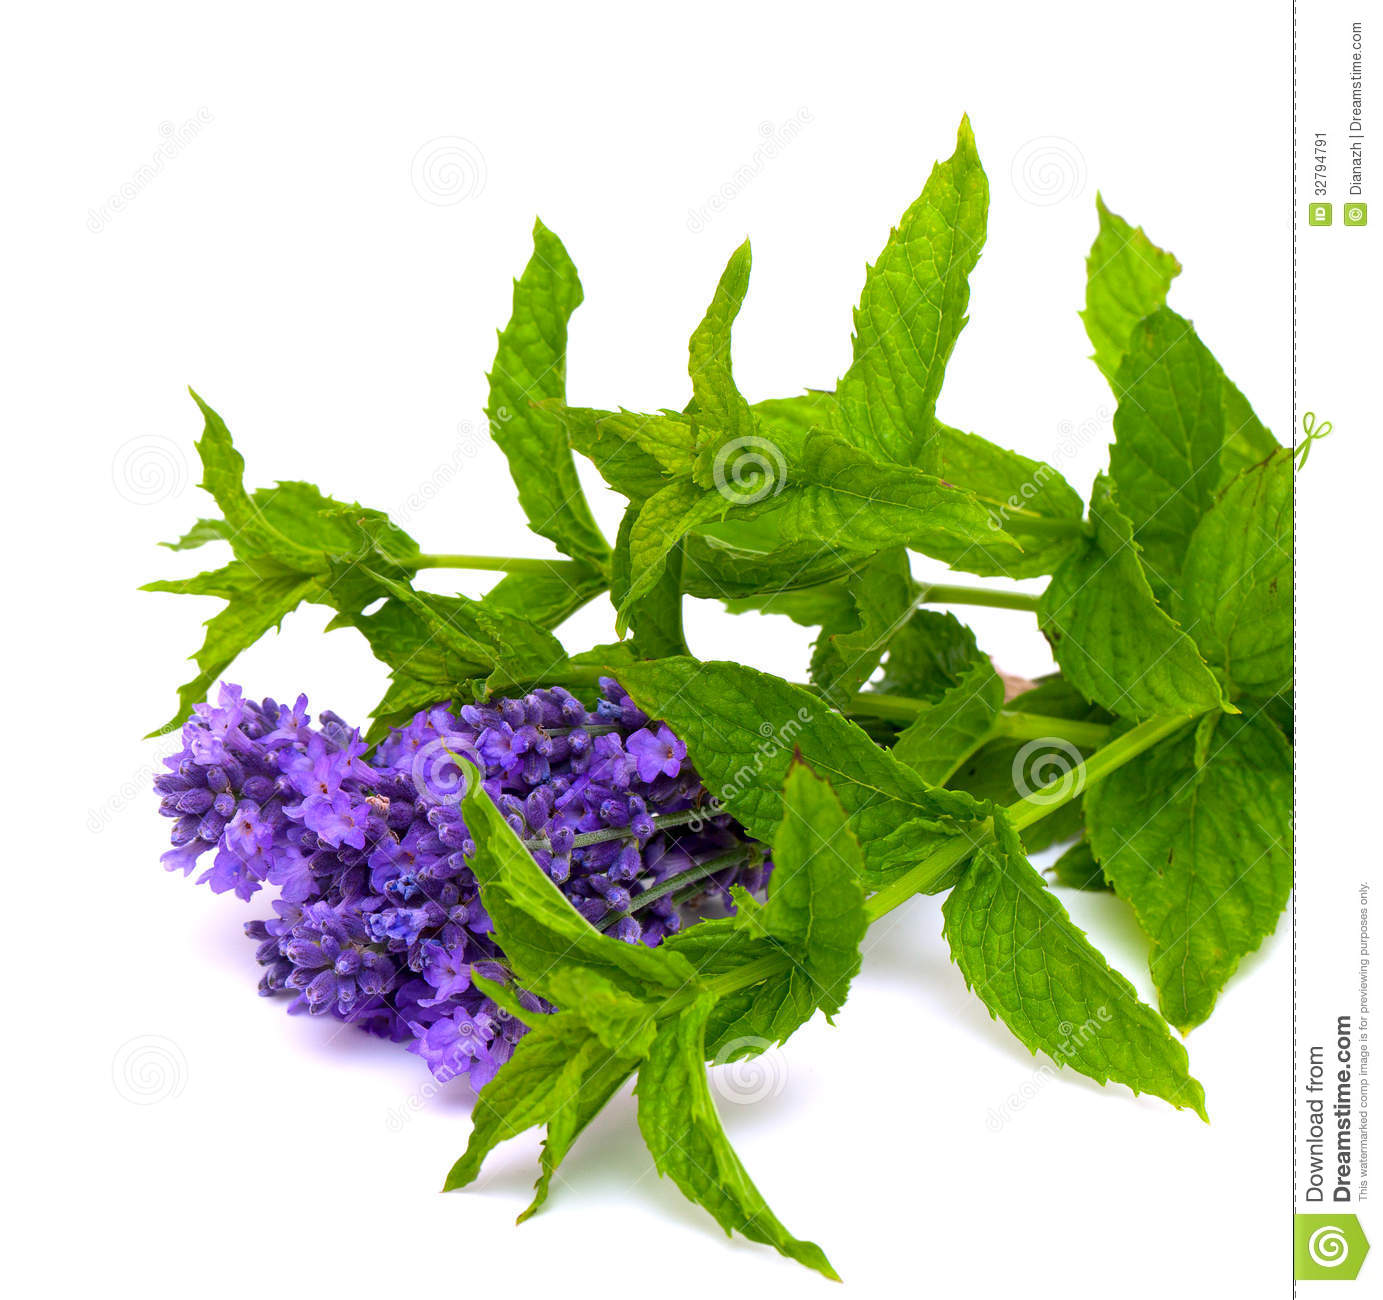 Fresh Green Mint And Lavender Stock Image - Image: 32794791